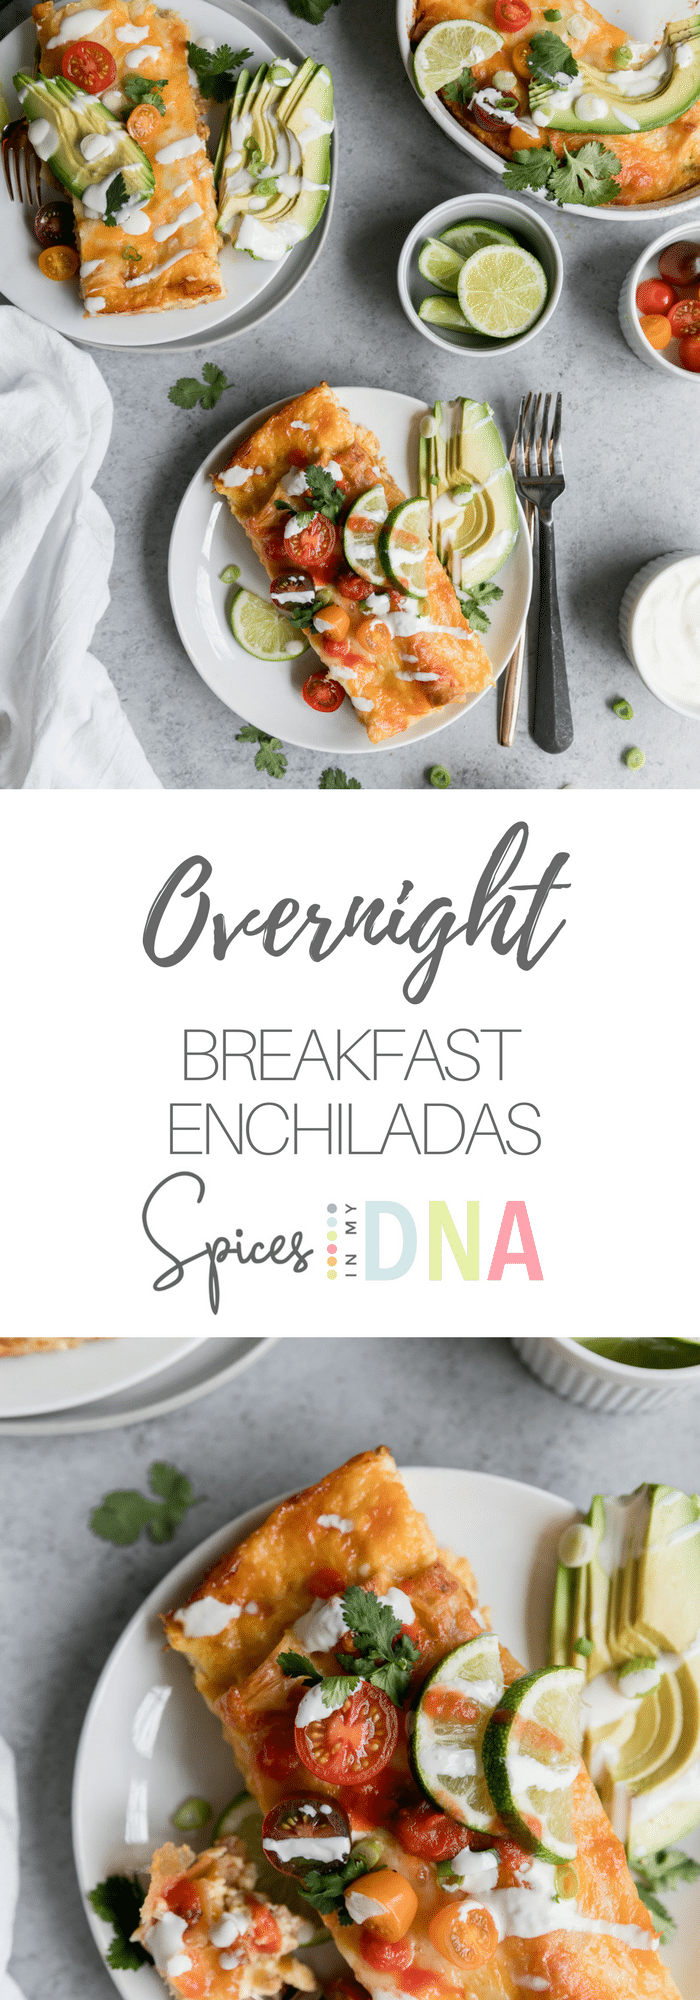 These Overnight Breakfast Enchiladas are the perfect make-ahead brunch! They're filled with chicken sausage, peppers, onions, and spices, and then topped with an egg mixture, and left to sit in the fridge overnight! All you have to do is bake it in the morning, and serve with avocado, salsa, sour cream, and cilantro!